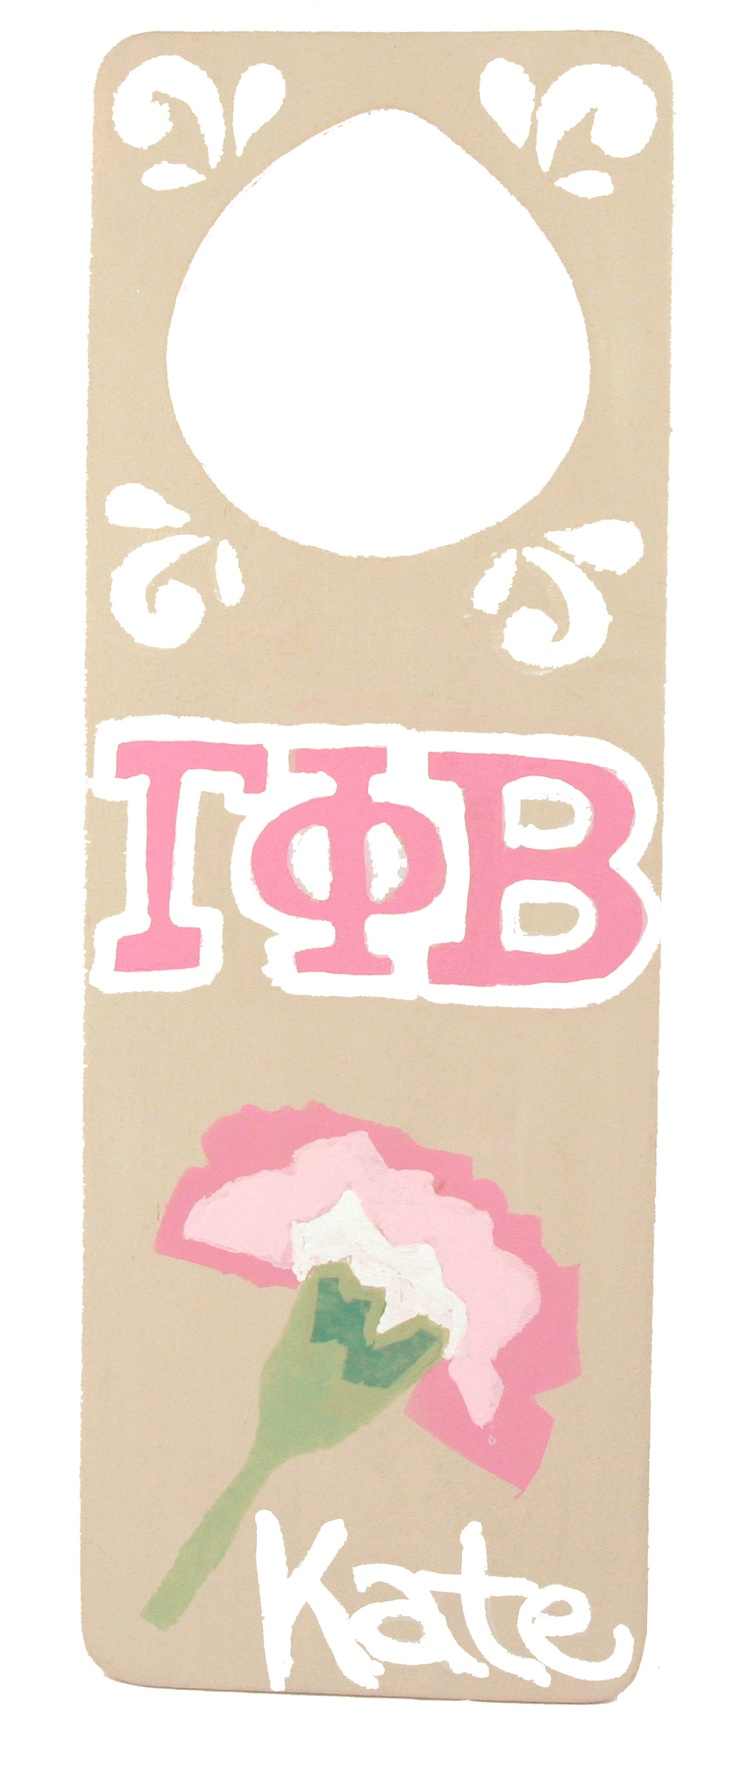 Gamma Phi Beta door hanger made with supplies and custom stencils from DIYGreek.com ...for the wing?